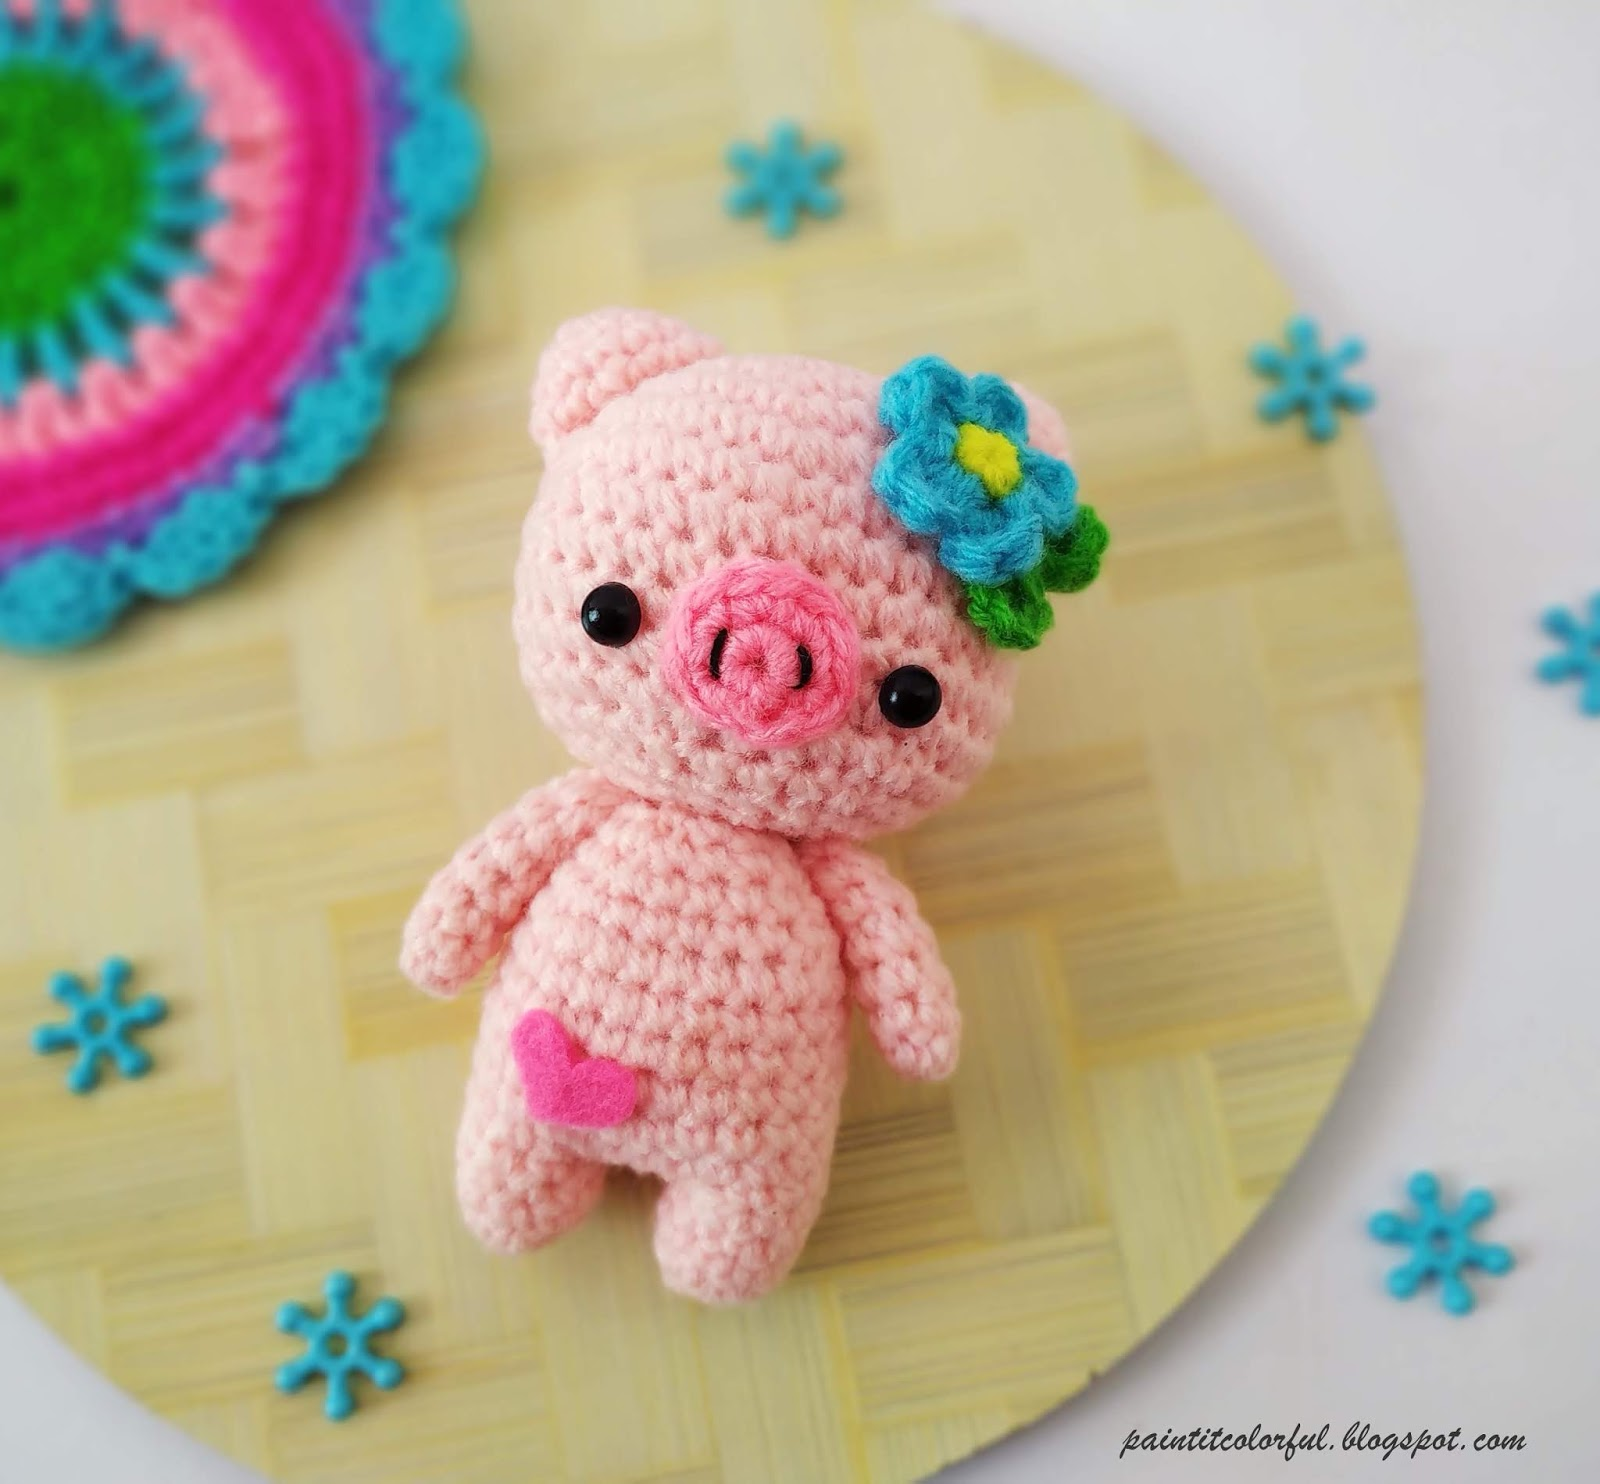 Pig Crochet Patterns For Chinese New Year Tying An End